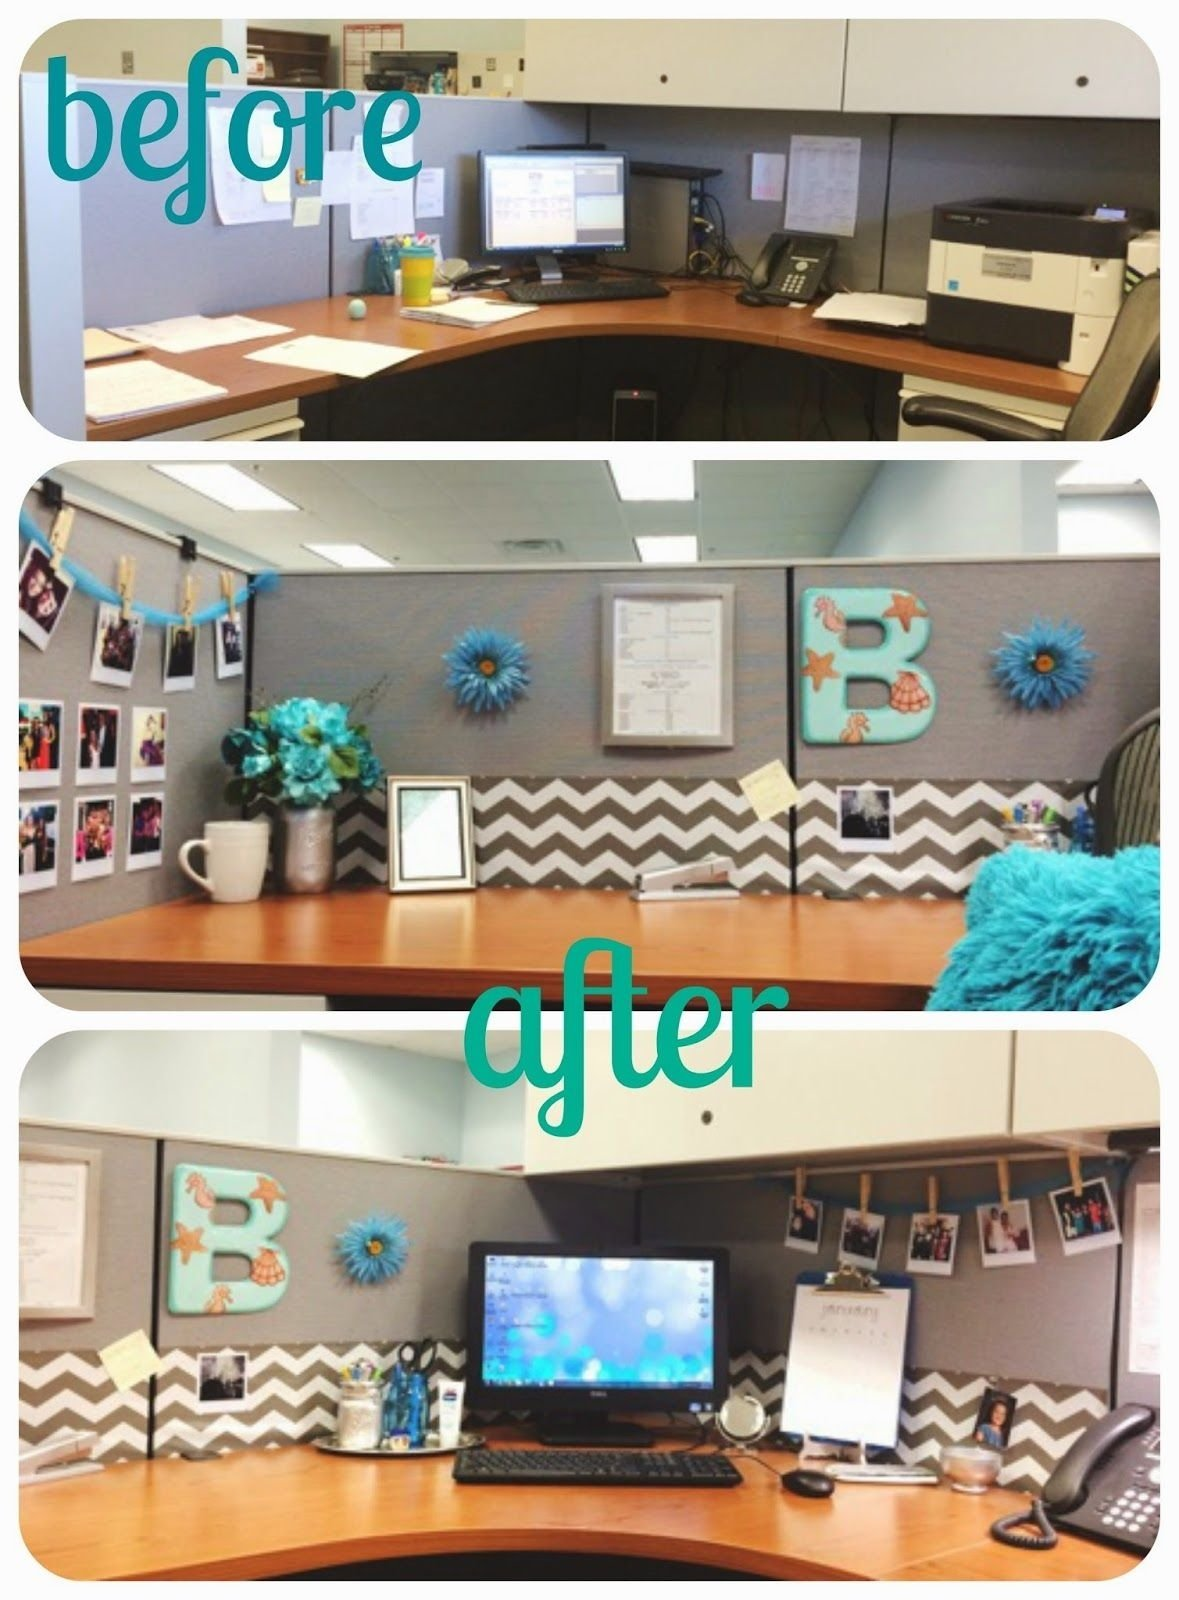 10 Unique Desk Decorating Ideas For Work diy desk glam give your cubicle office or work space a makeover 2 2021